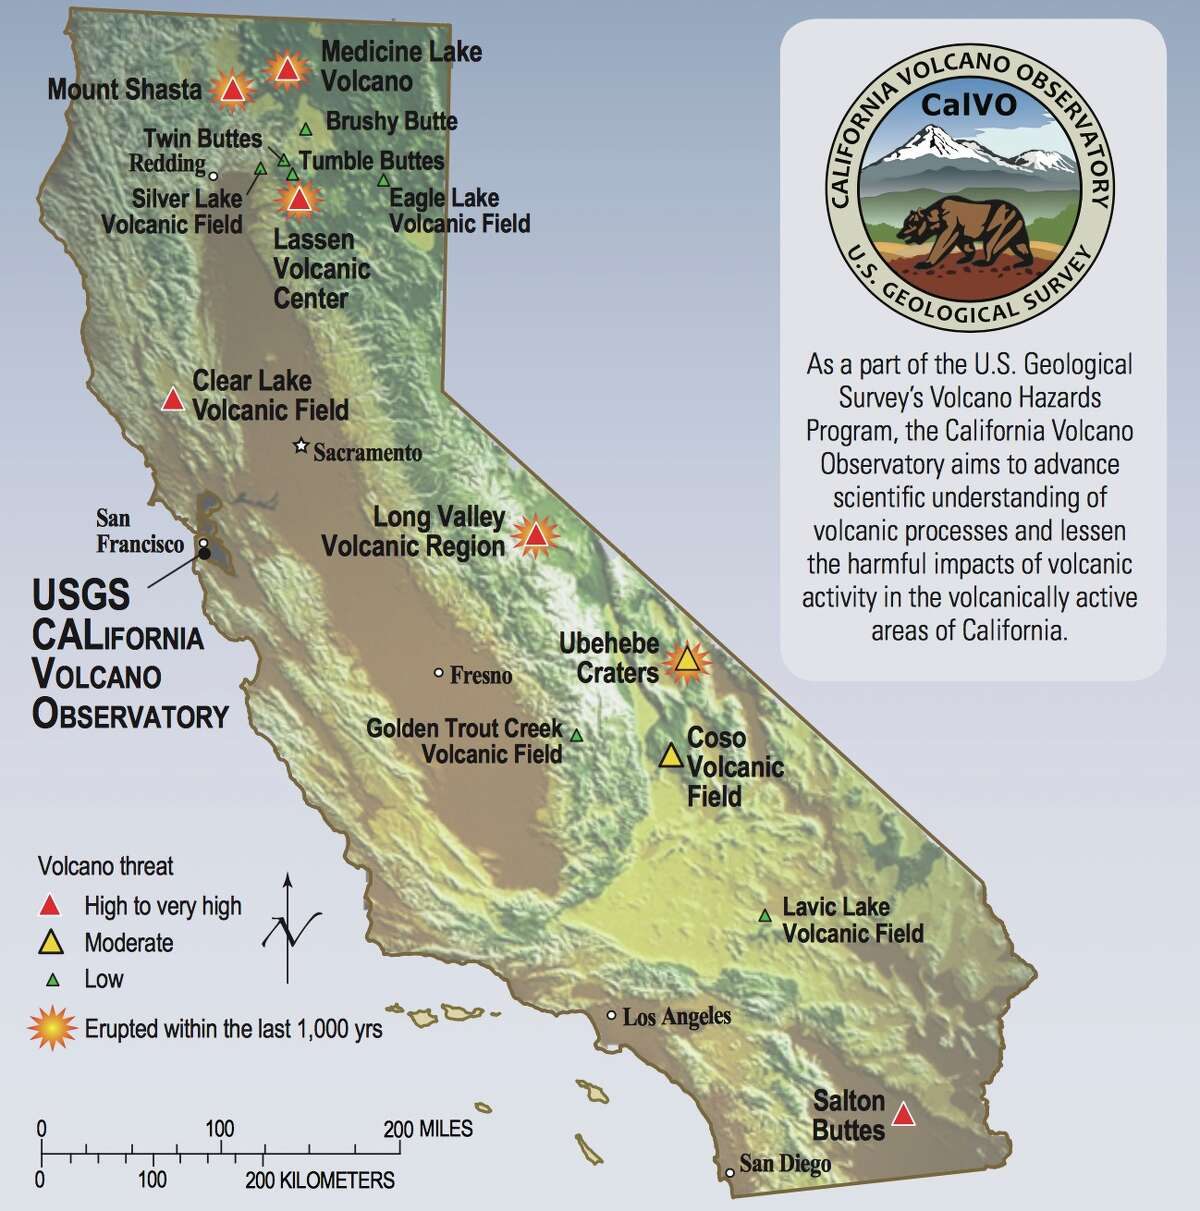 USGS caption: Volcanoes of very high to low threat are scattered throughout California, from the Oregon border (north) to Mexico (south). Other older volcanoes in California are of less concern. California's volcano watch list is subject to change as new data on past eruptive activity are collected, as volcanic unrest changes, and as populations in threatened areas grow or decline.